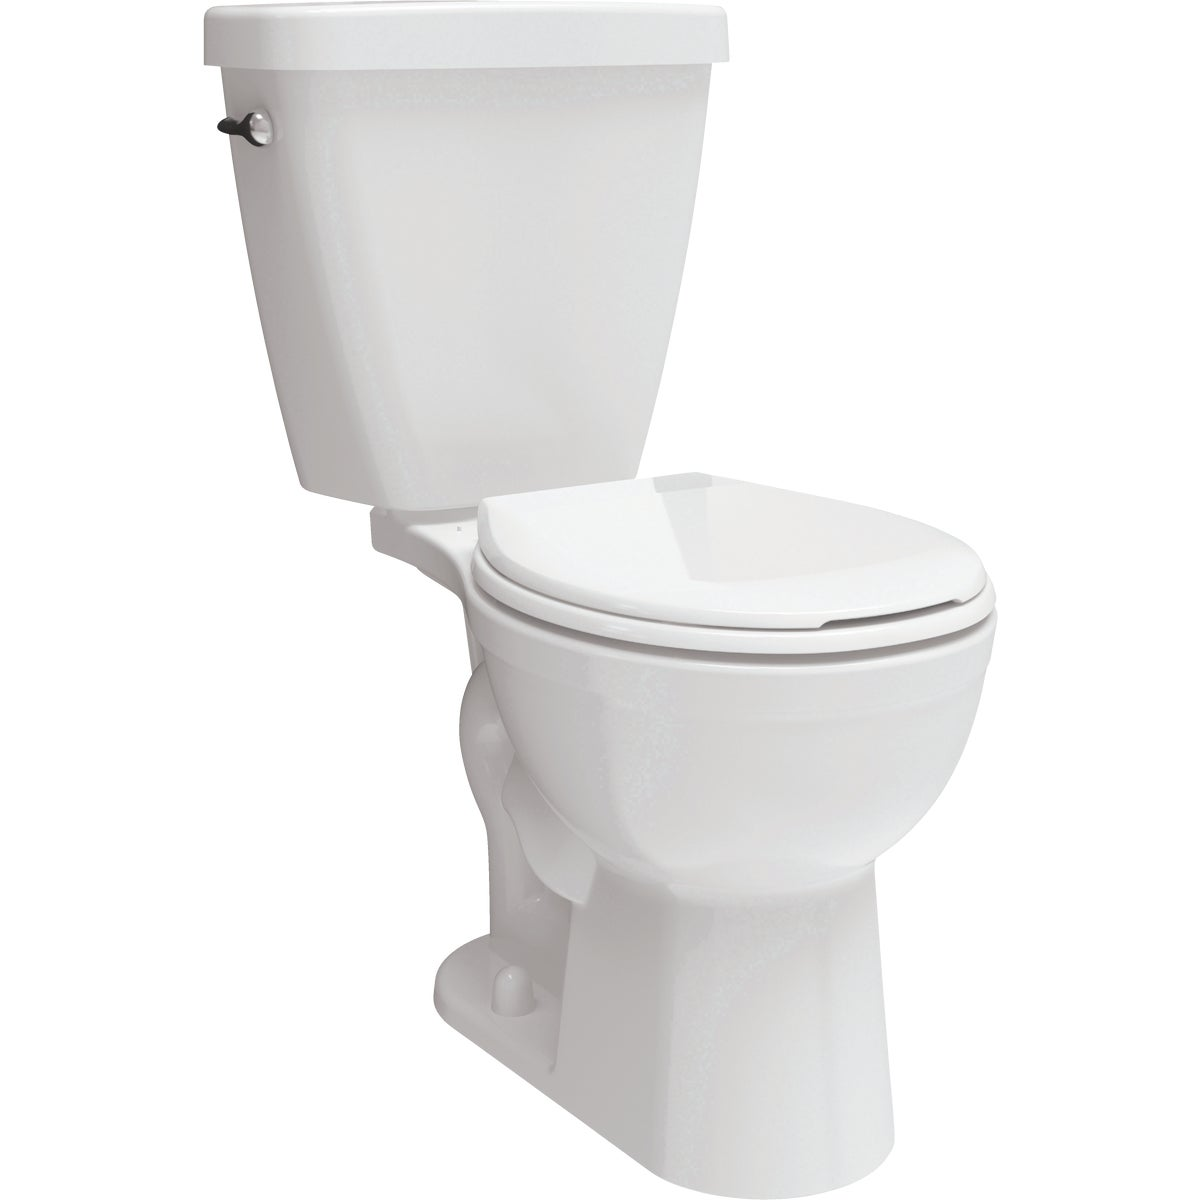 PRELUDE WHT RF TOILET - C41201-WH by Delta - Toilets